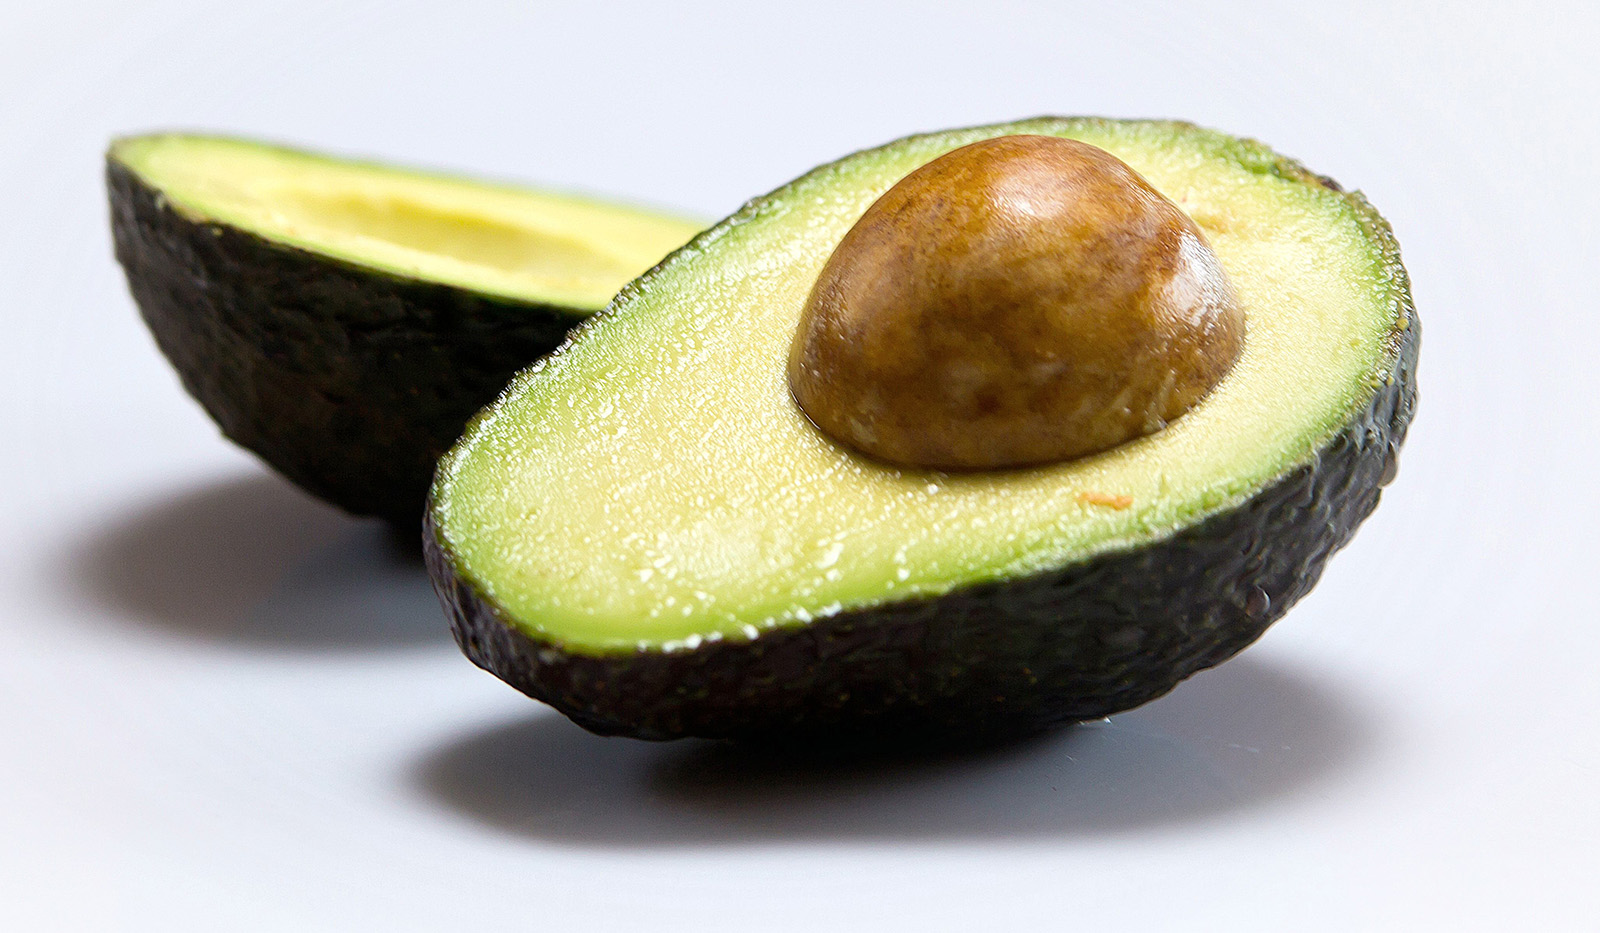 aguacate avocado